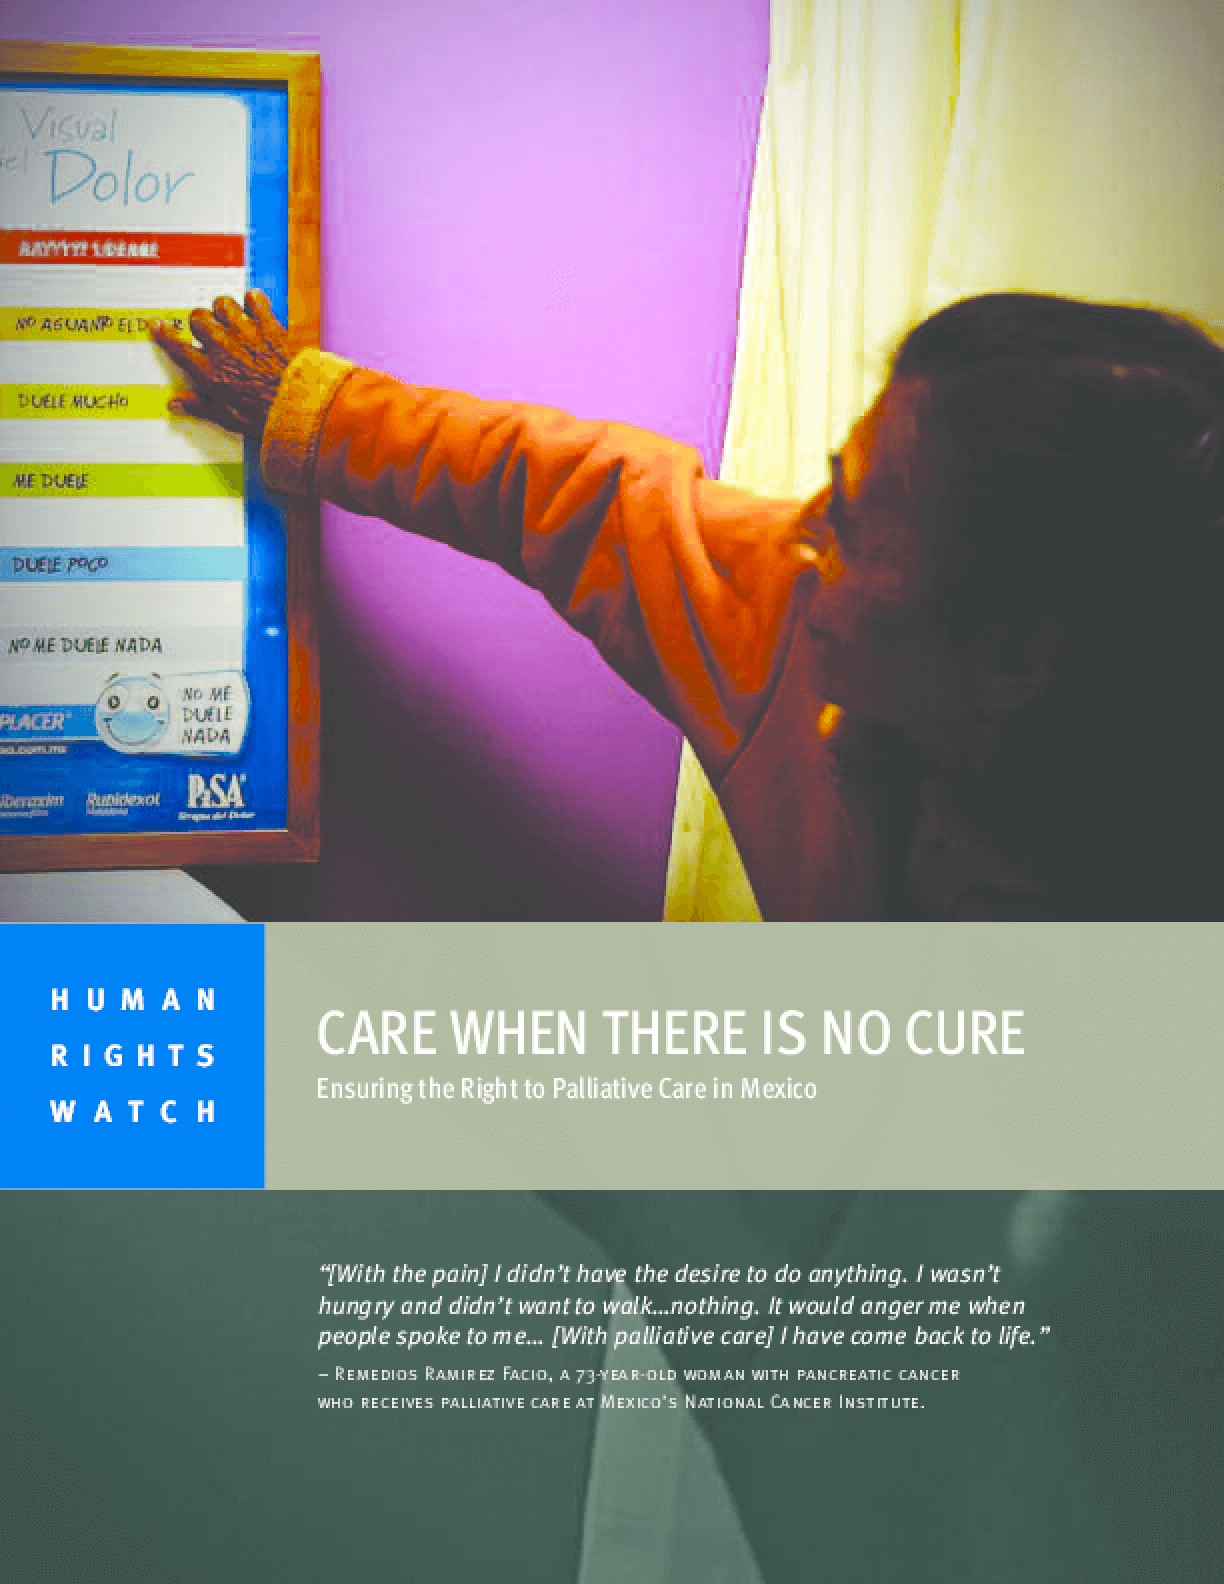 Care When There is No Cure: Ensuring the Right to Palliative Care in Mexico